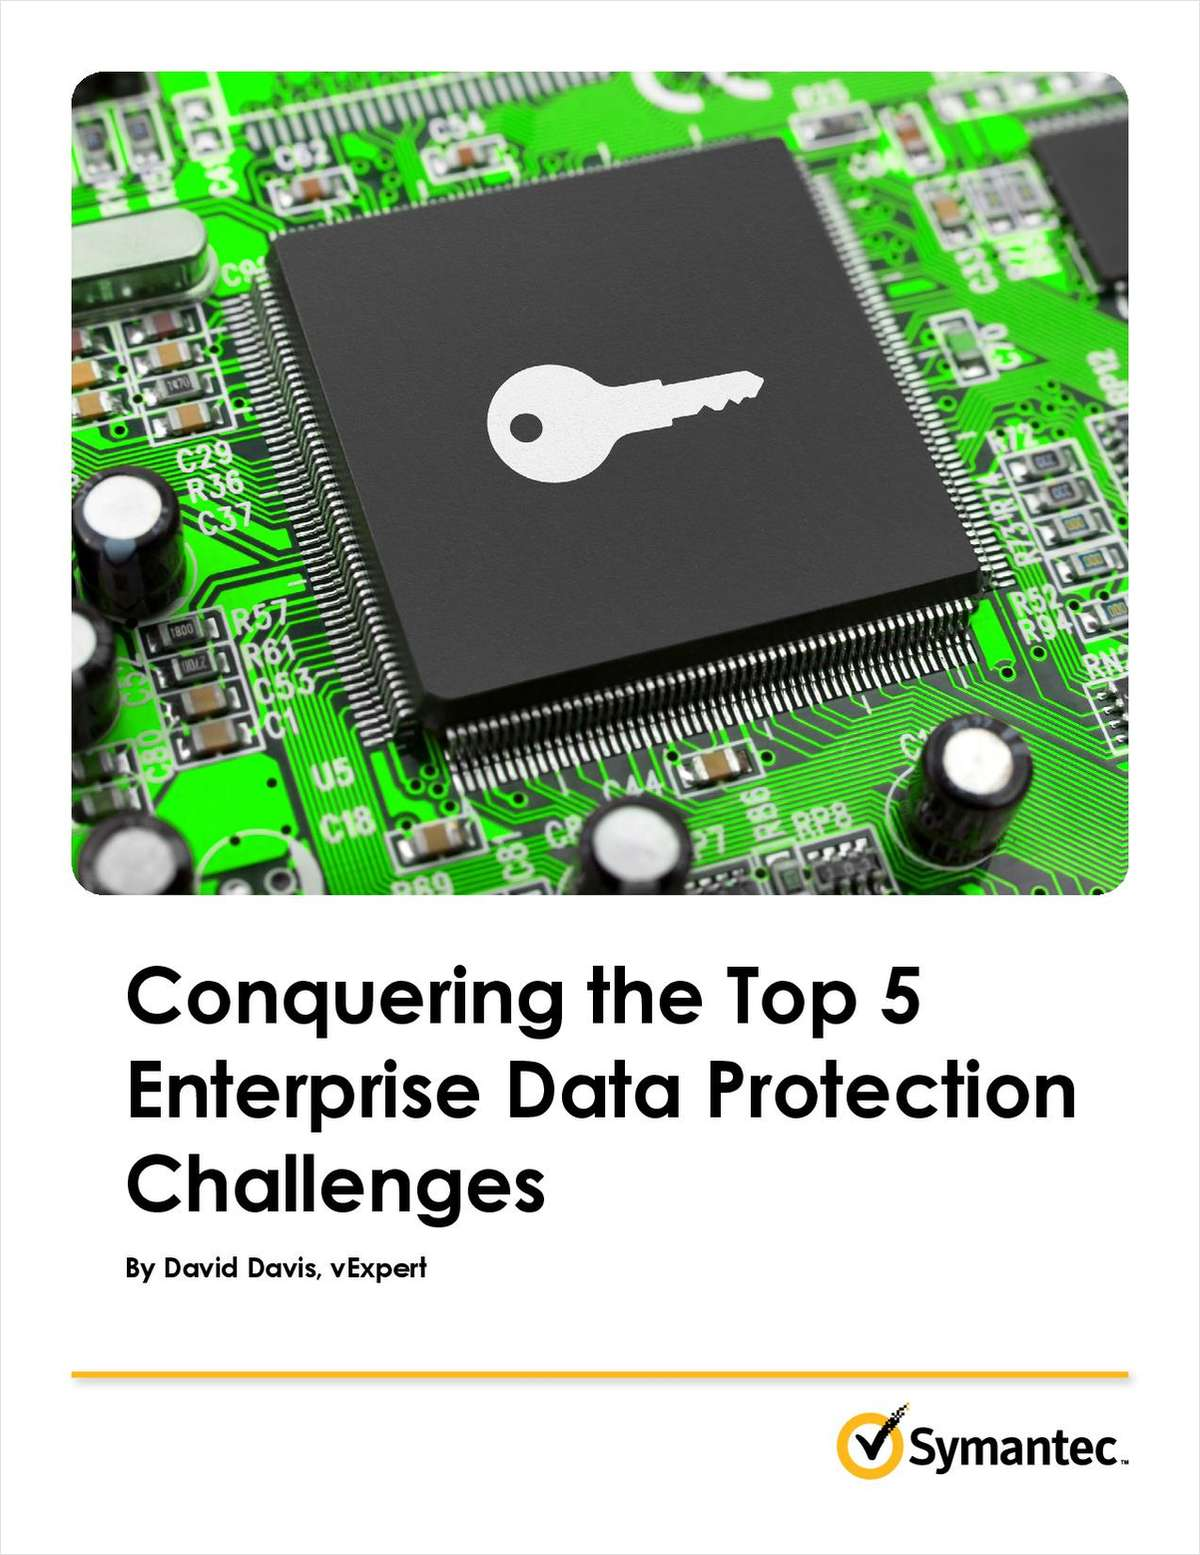 Conquering the Top 5 Enterprise Data Protection Challenges